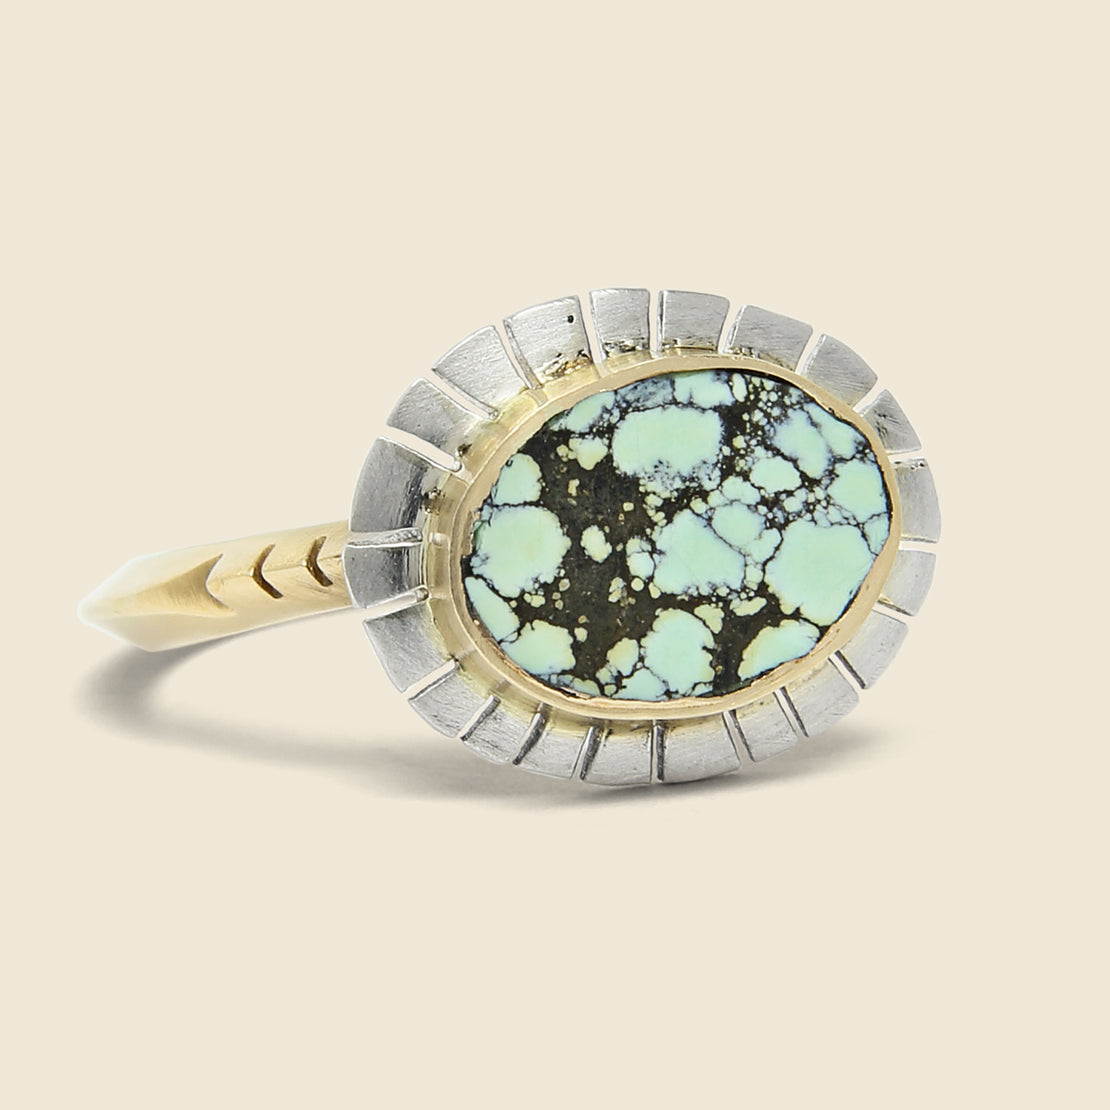 Young in the Mountains Equinox Ring - Peacock Turquoise